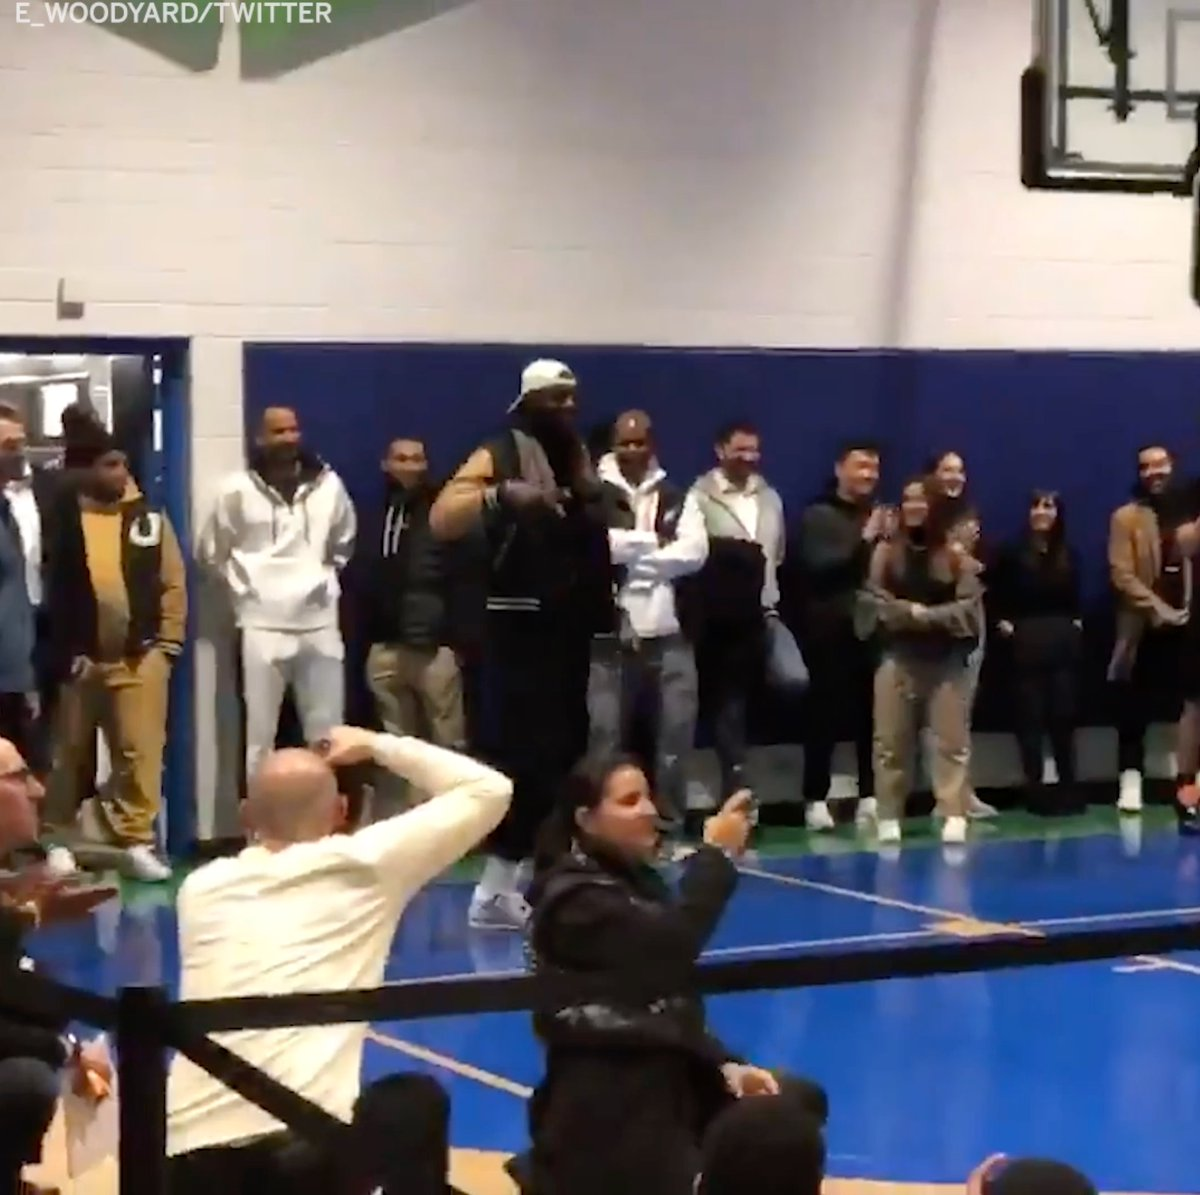 Bron loves the kids!   @AntDavis23 surprised the kids at Chicago's Dr. Martin Luther King, Jr. Boys & Girls Club by bringing out @KingJames 👏  (via @E_Woodyard)